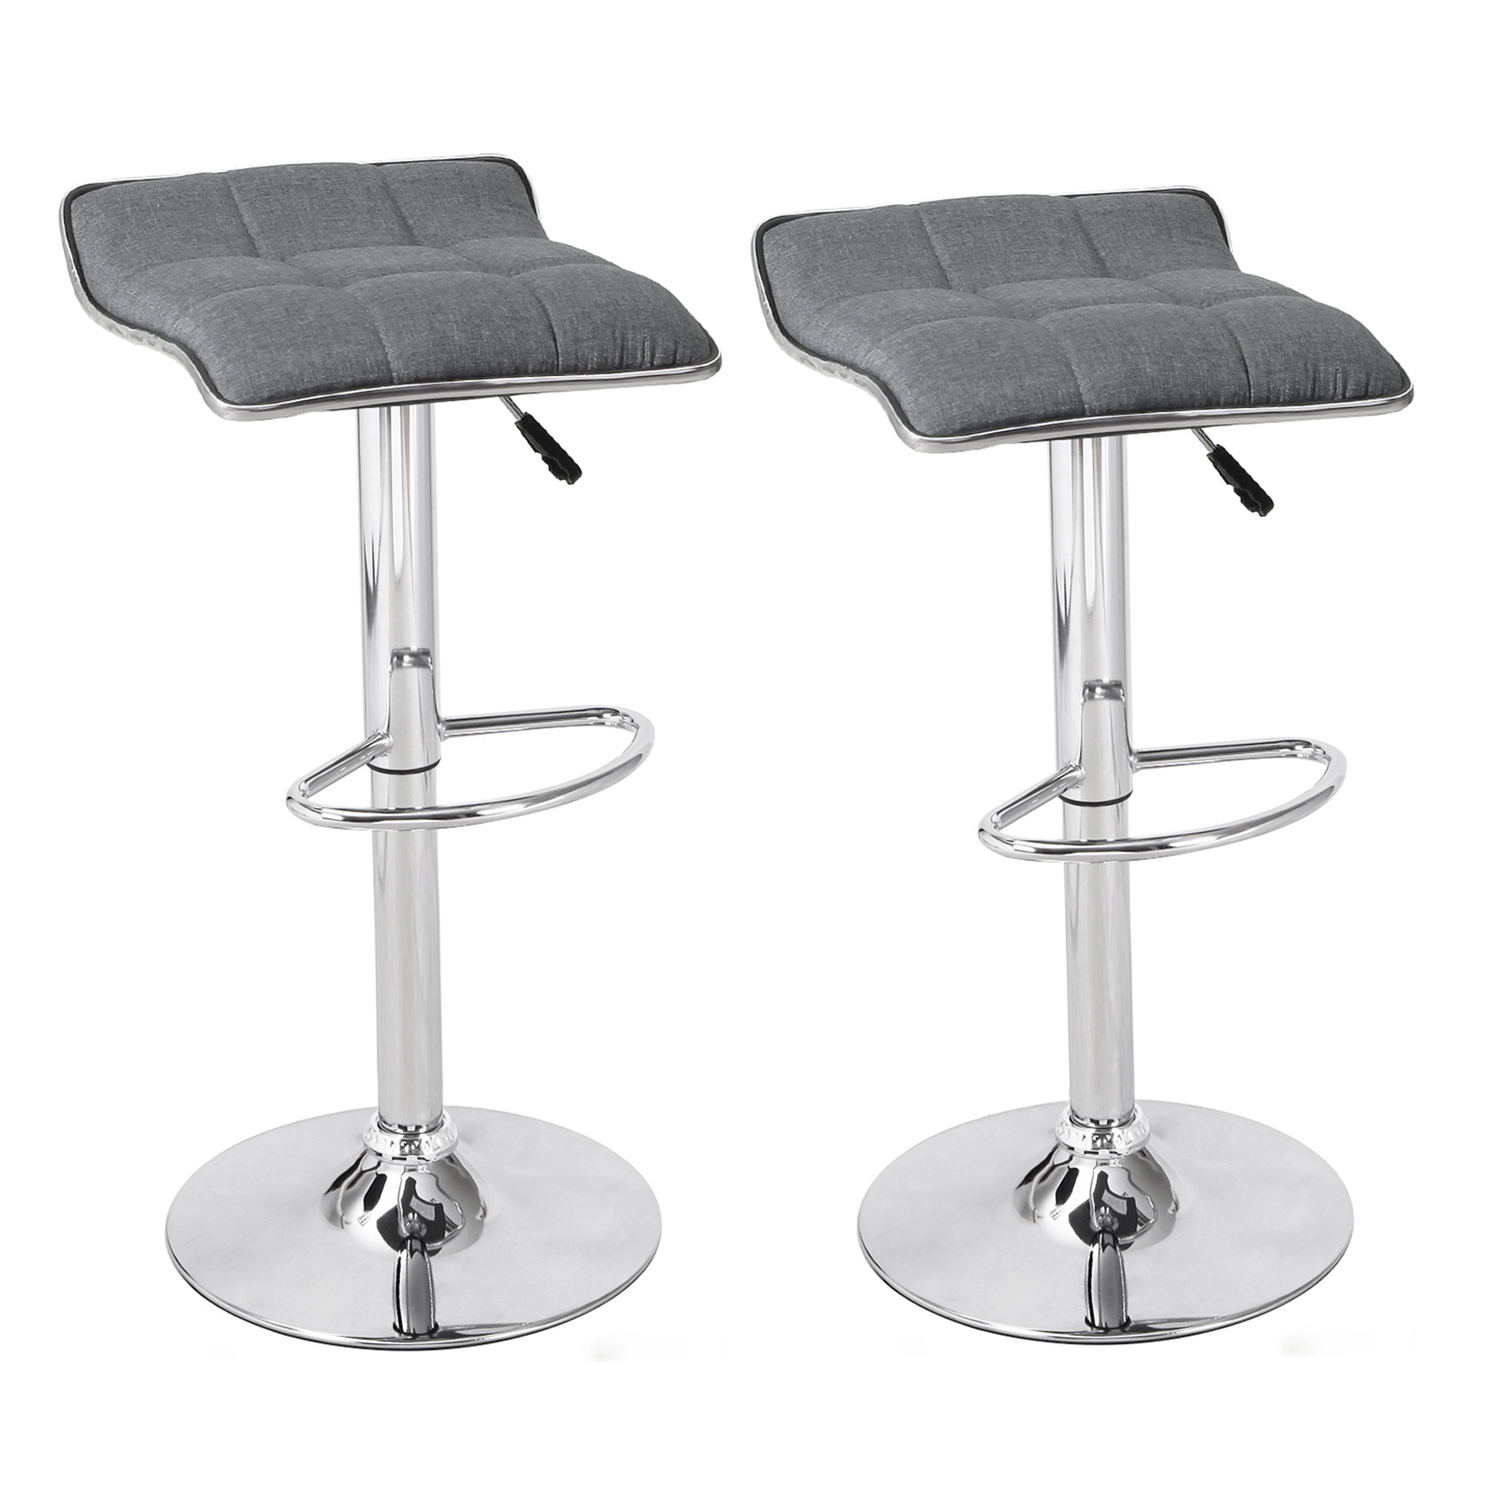 Strange Decenthome Grey Fabric Backless Adjustable Bar Stools Set Of 2 Ch0292 Uwap Interior Chair Design Uwaporg